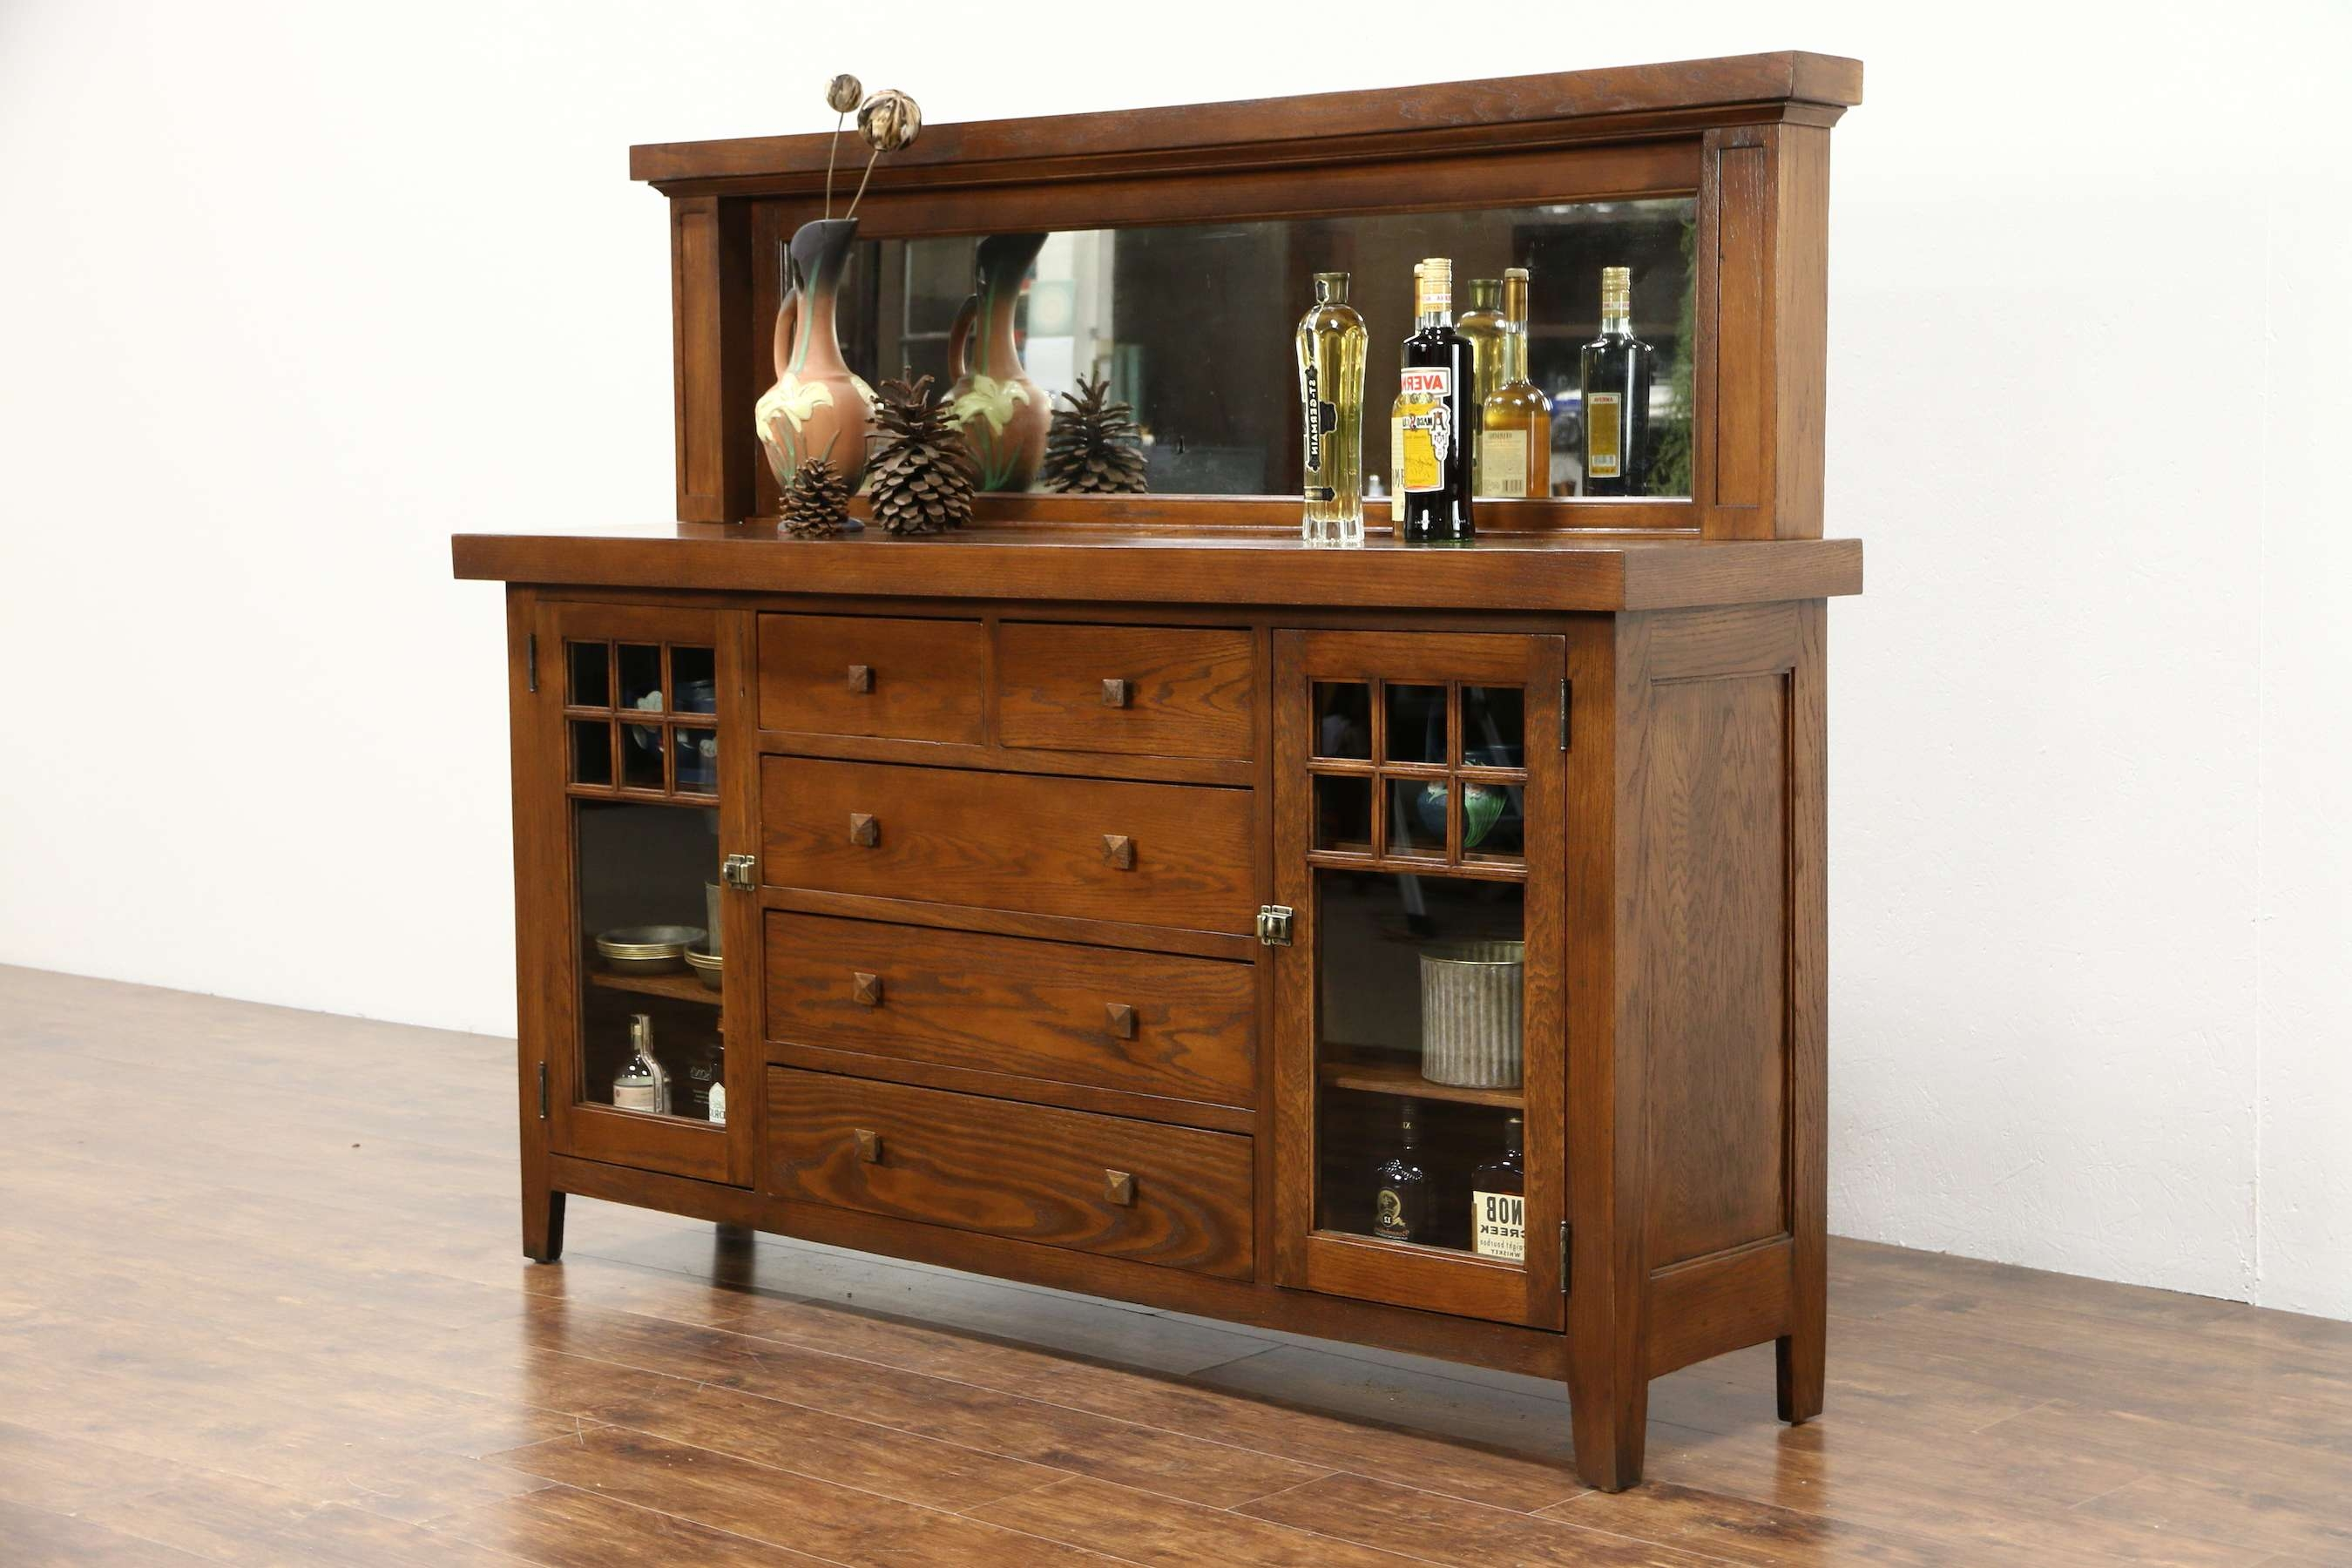 Sold – Arts & Crafts Mission Oak 1900 Antique Craftsman Sideboard With Regard To Antique Sideboards With Mirror (View 18 of 20)